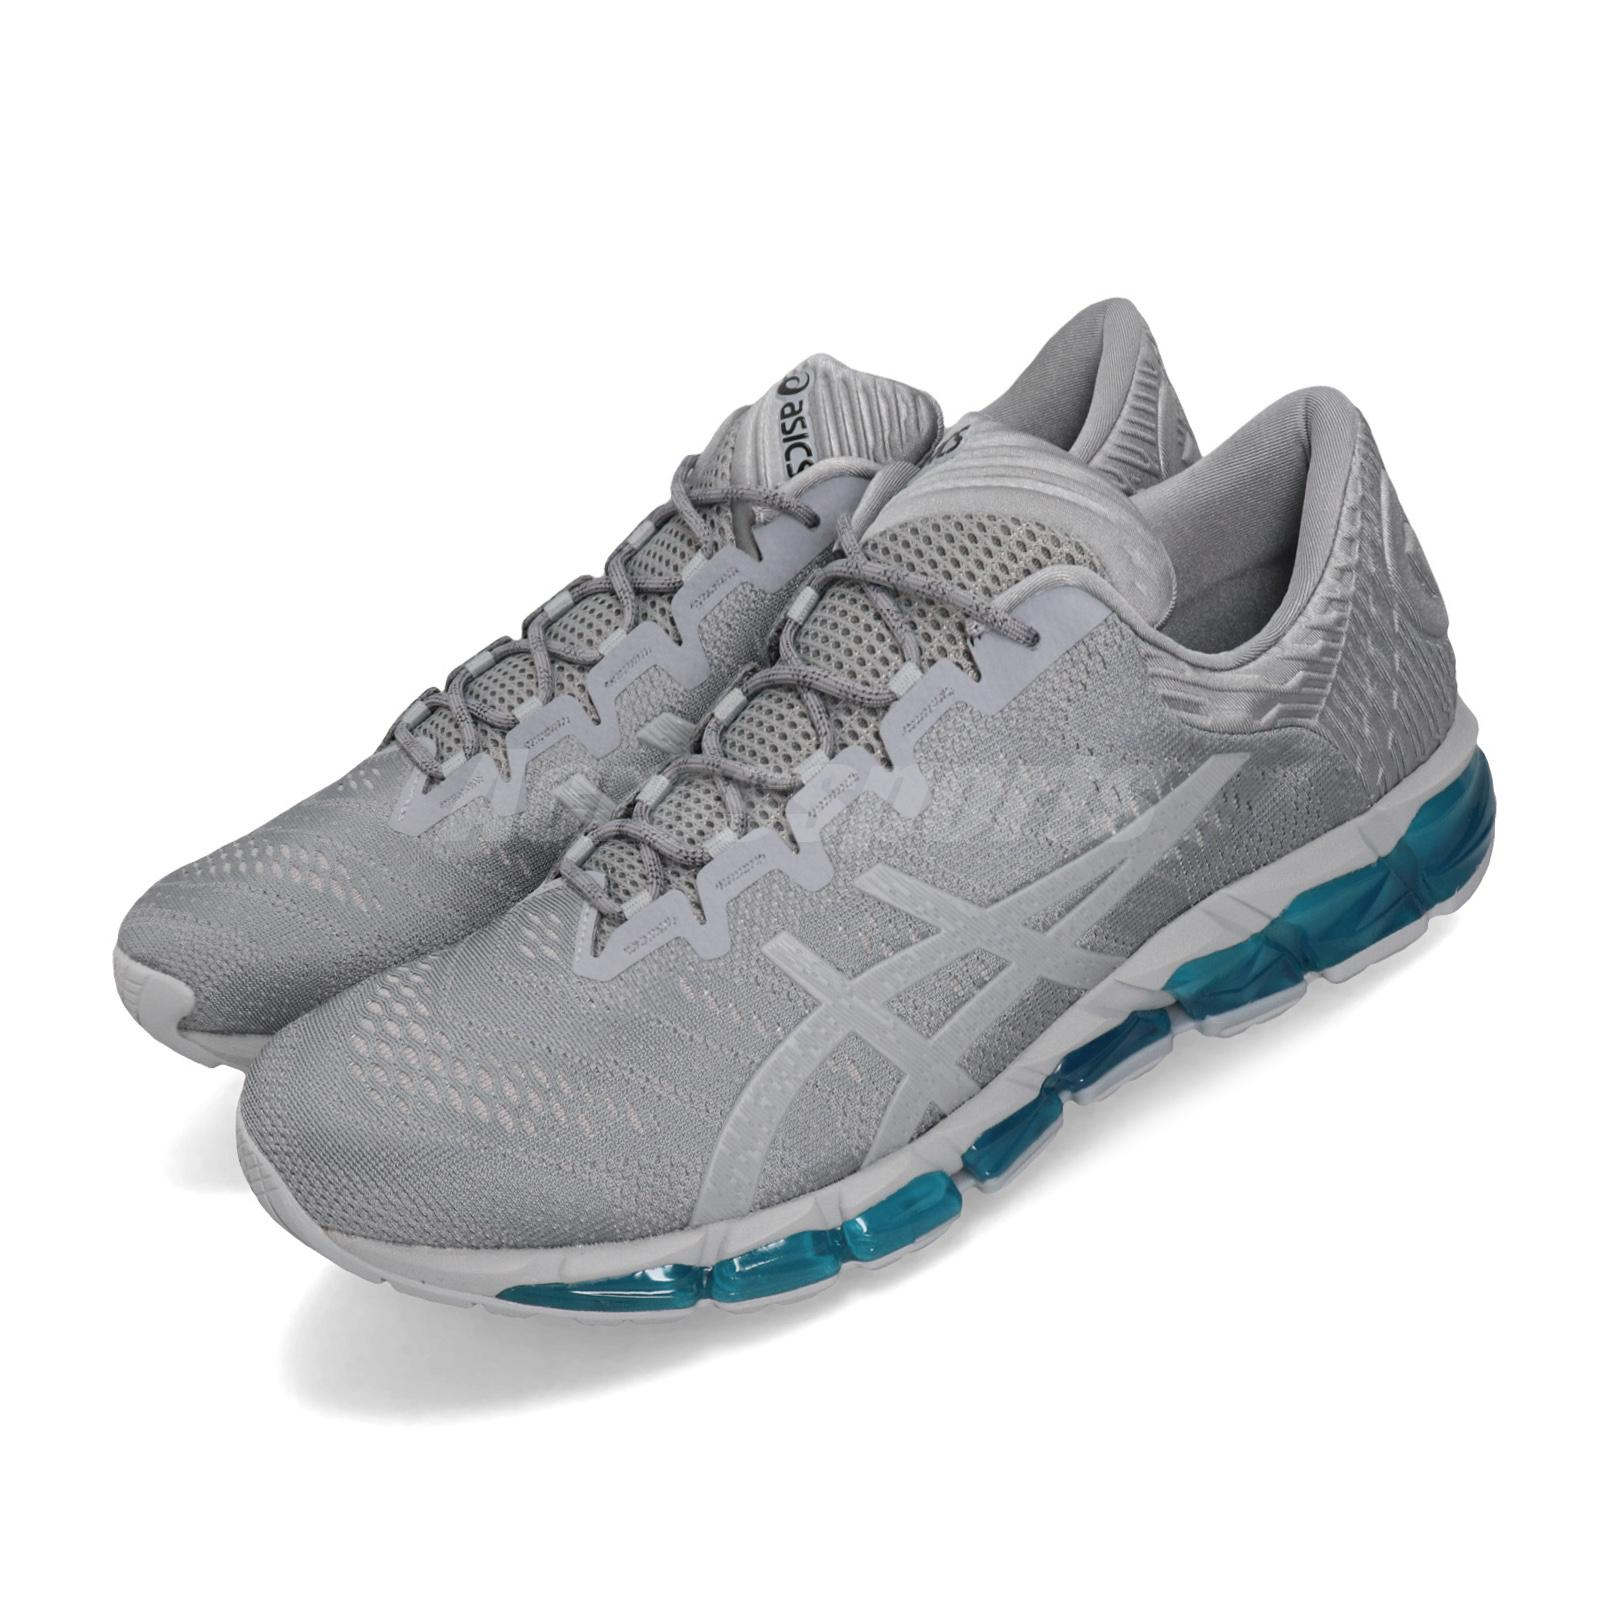 low priced 83338 daf97 Details about Asics Gel-Quantum 360 5 JCQ Grey Blue Men Running Shoes  Sneakers 1021A153-021